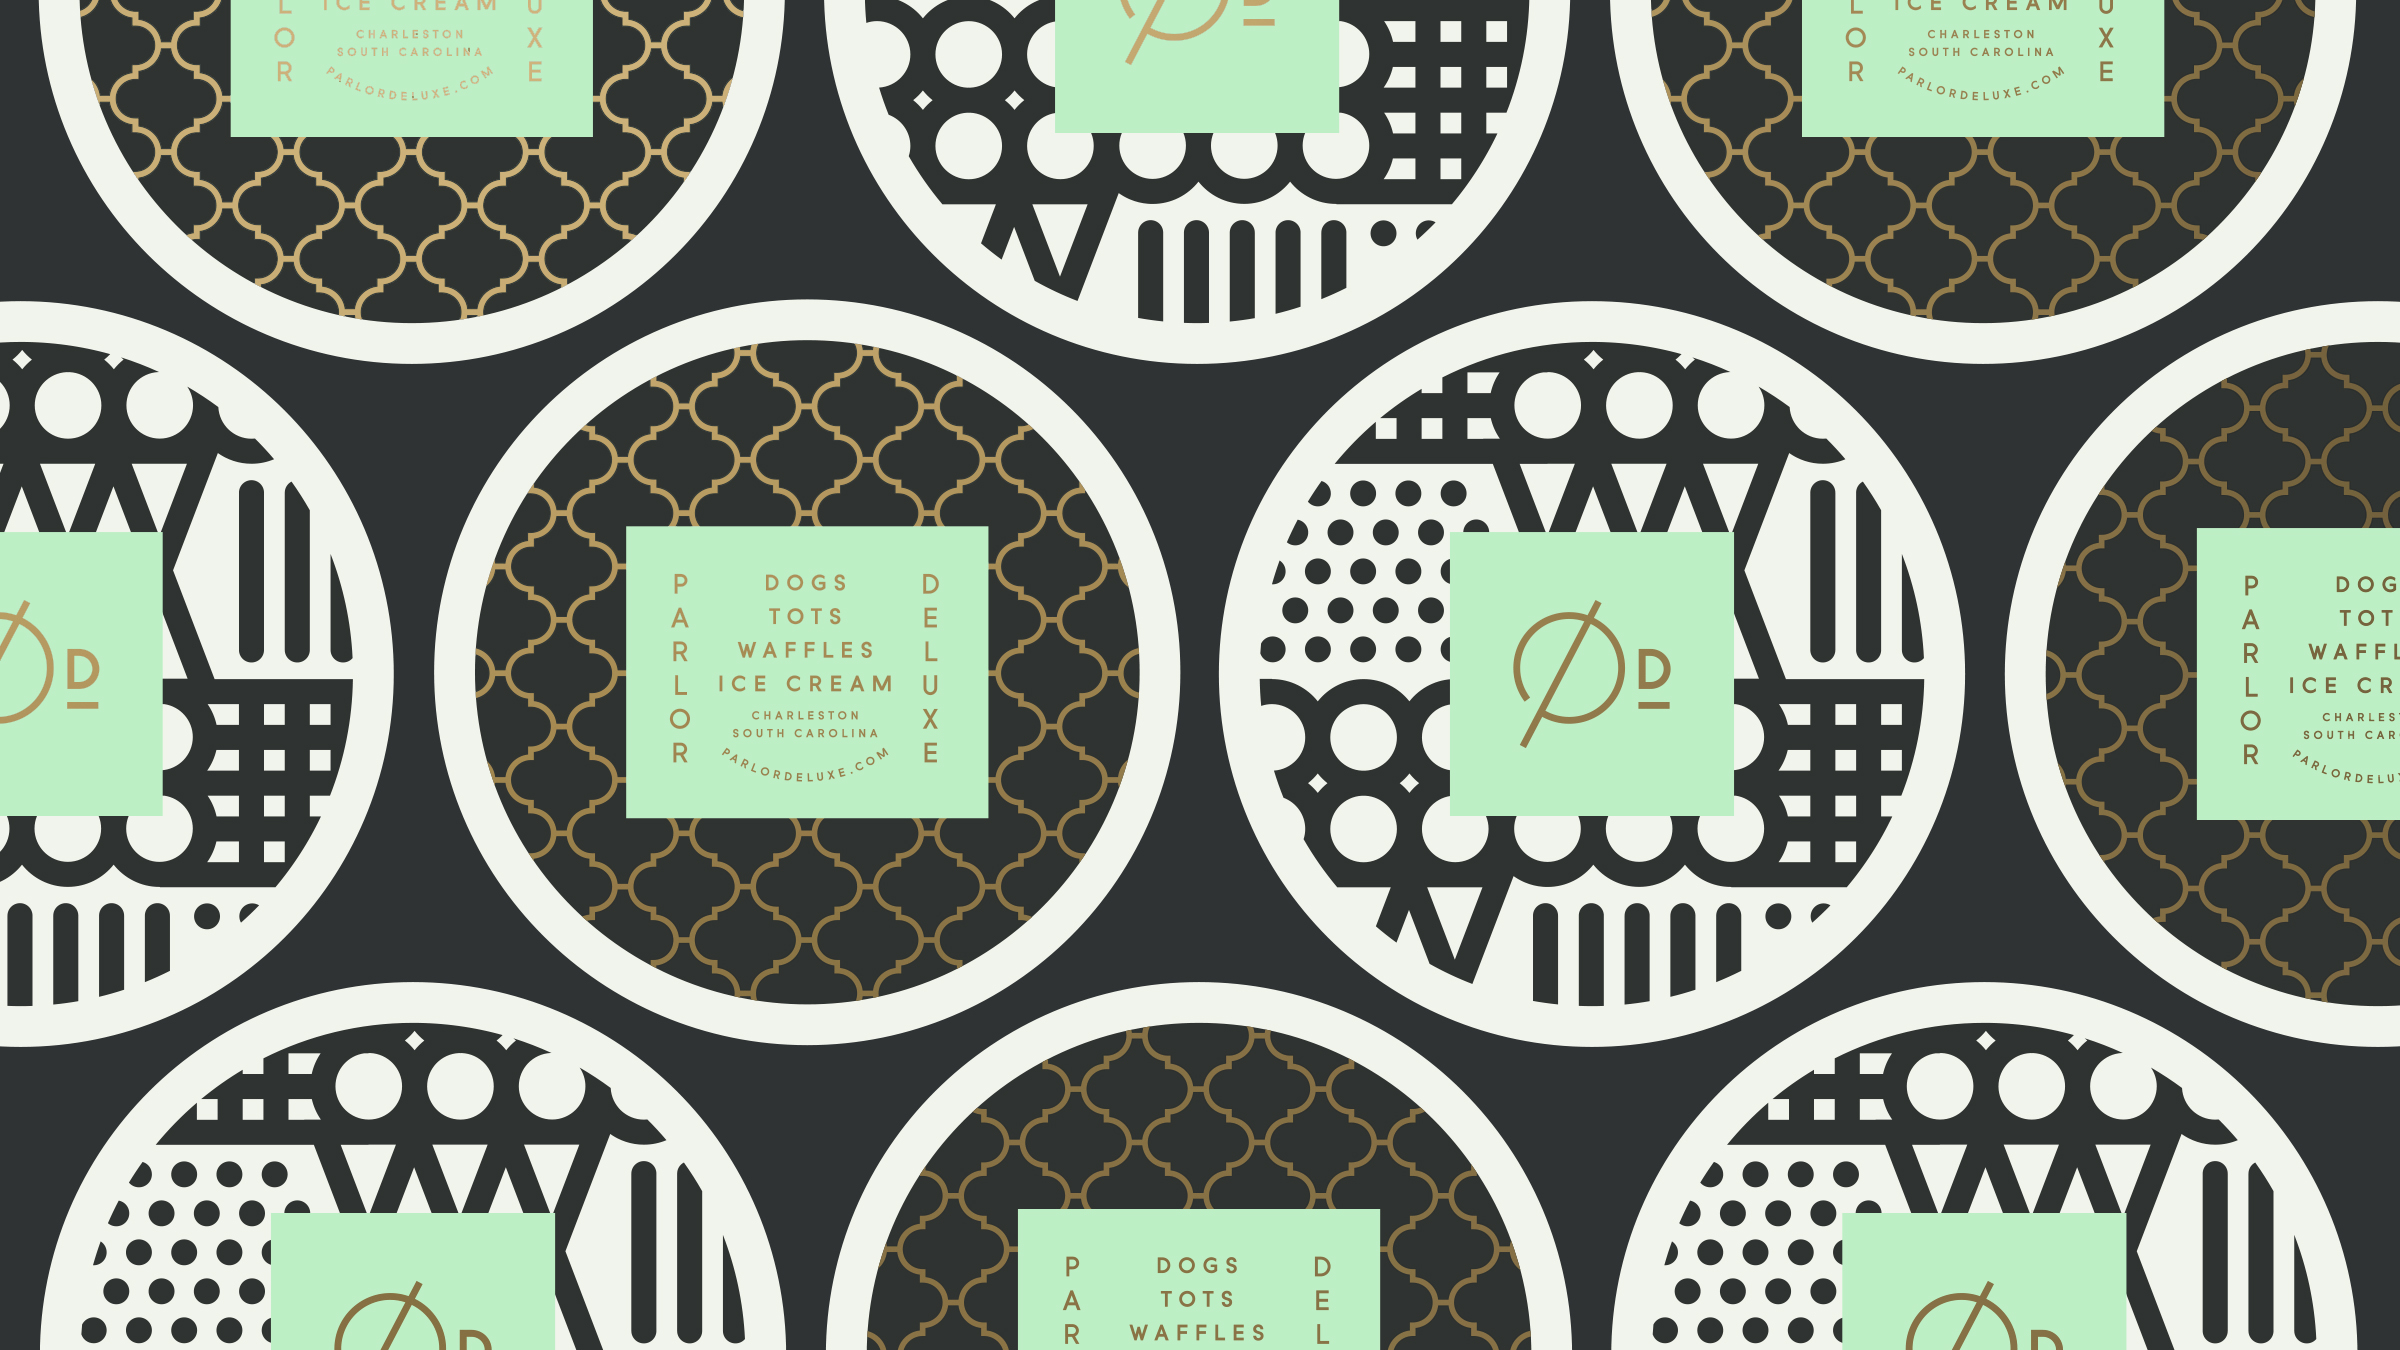 Parlor Deluxe Coasters